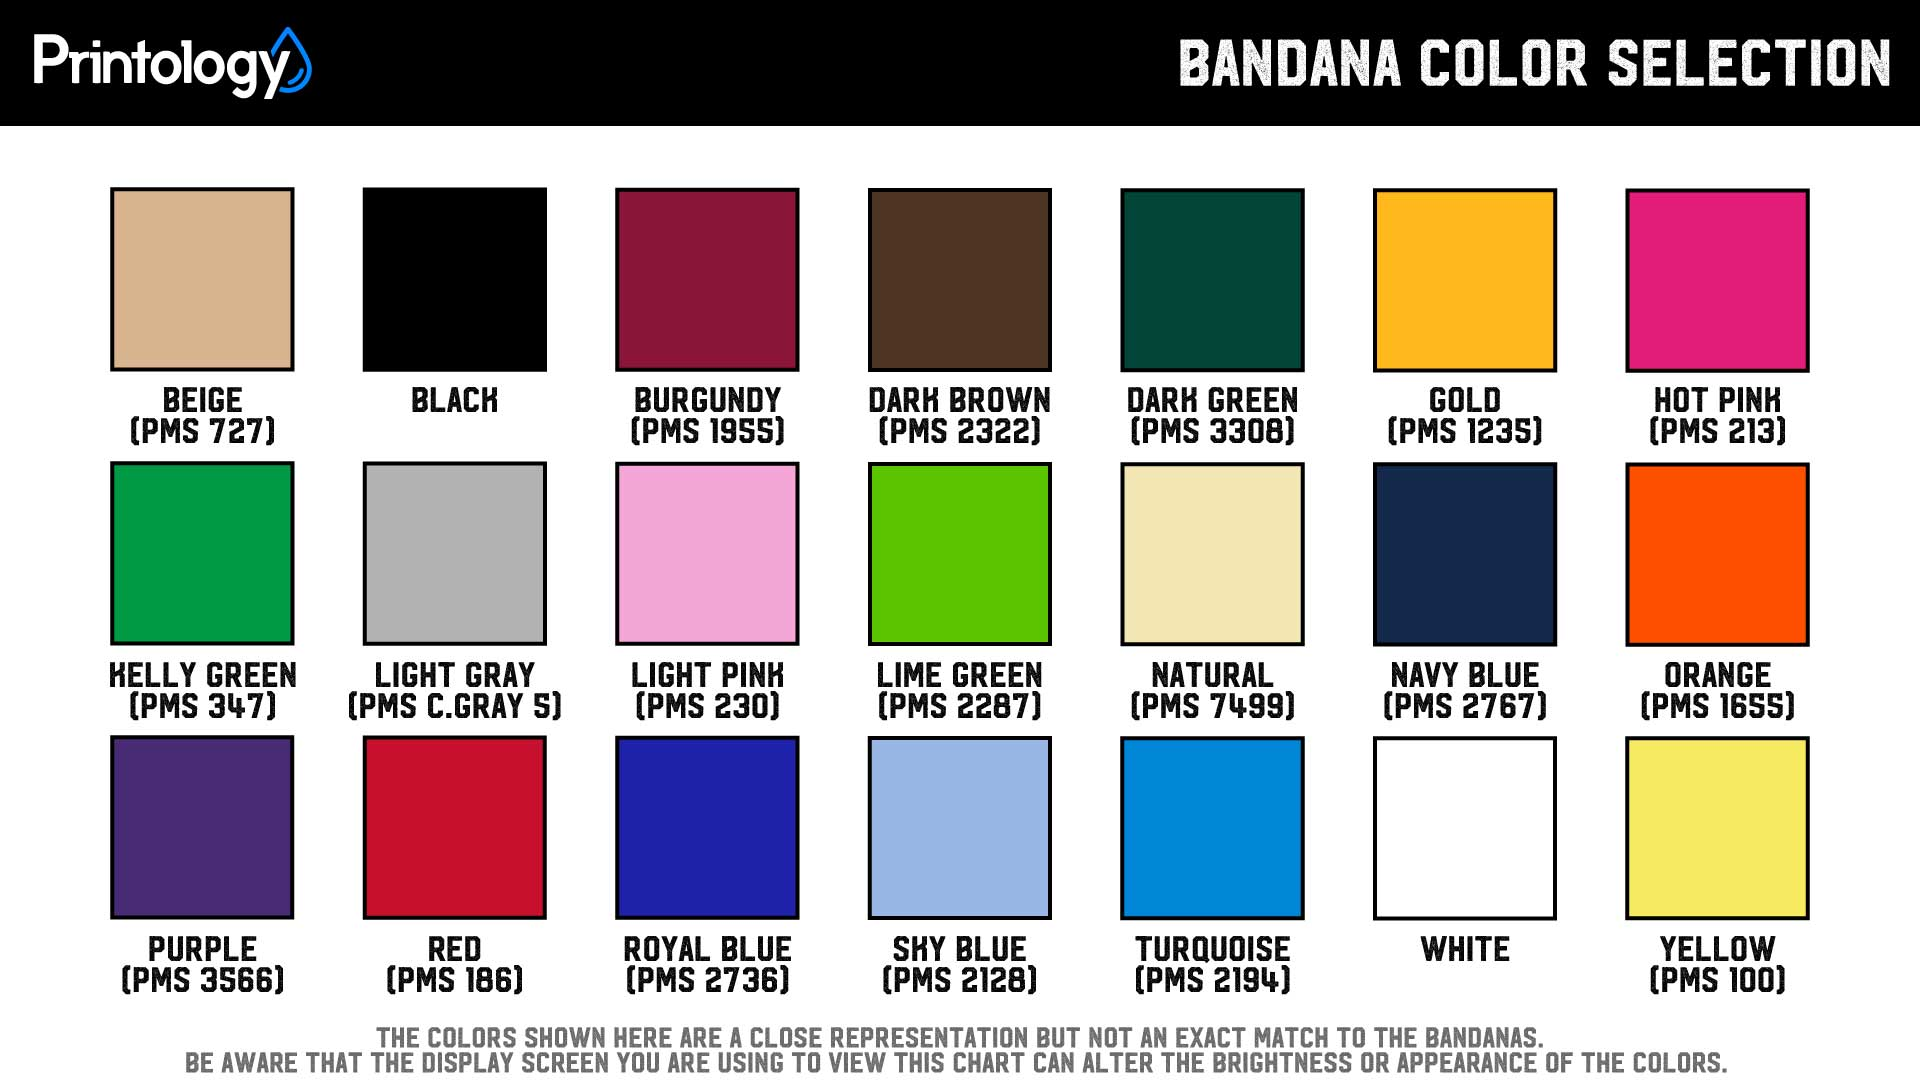 Custom Bandana Color Selection